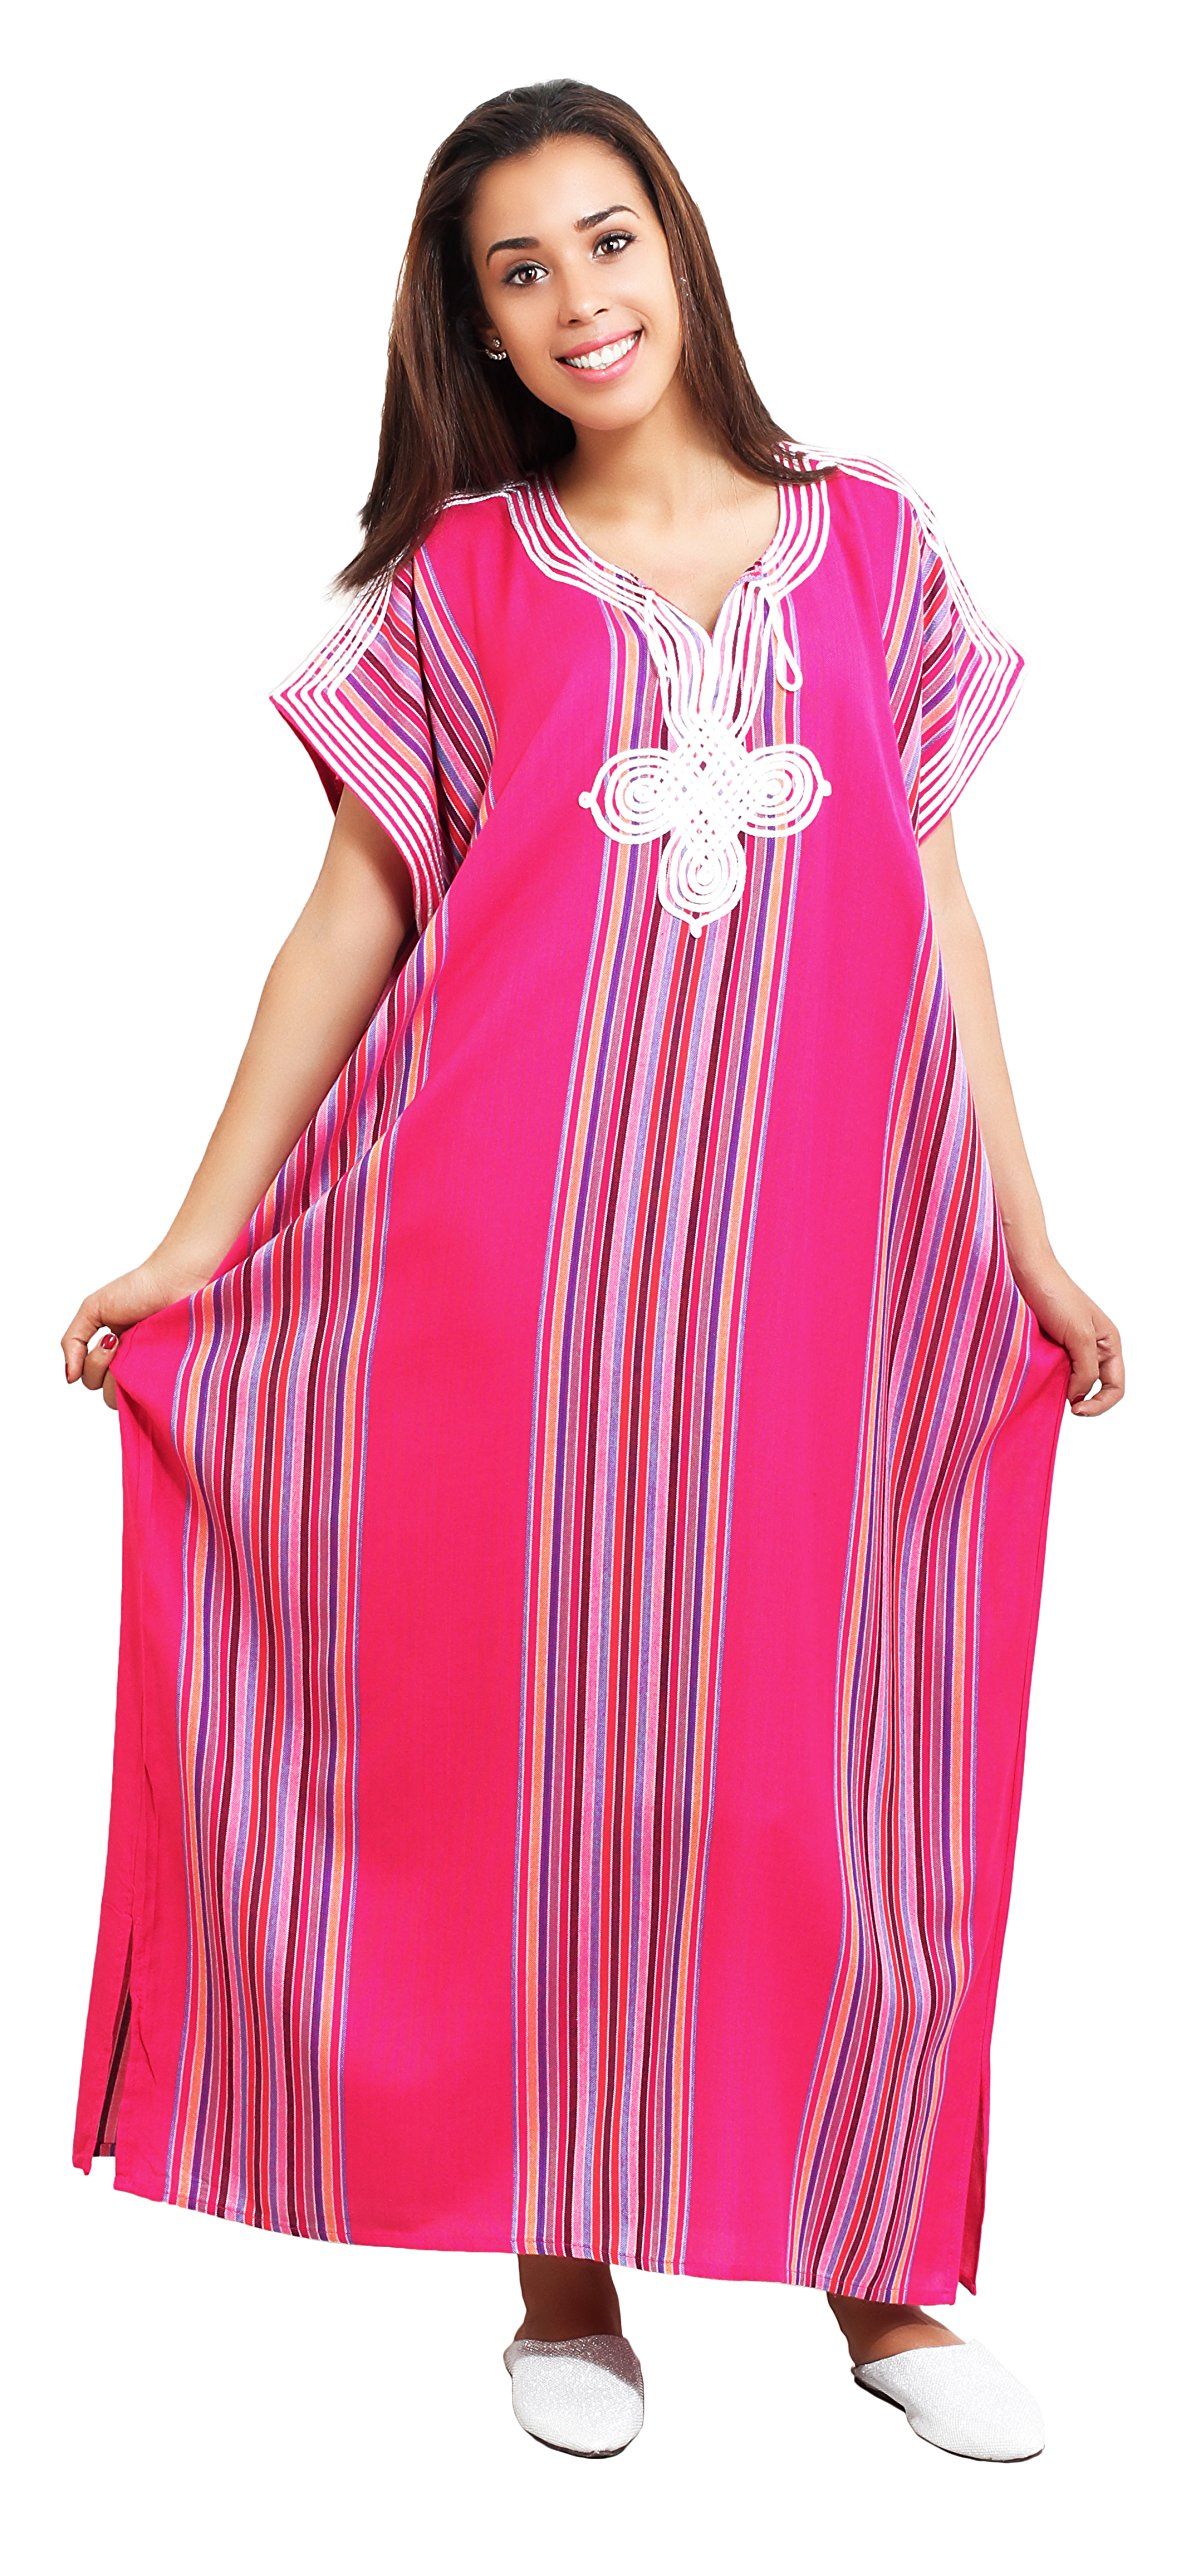 Moroccan Caftan Women Light Weight Linen Handmade with Embroidery Small To Large Ethnic Design Magenta